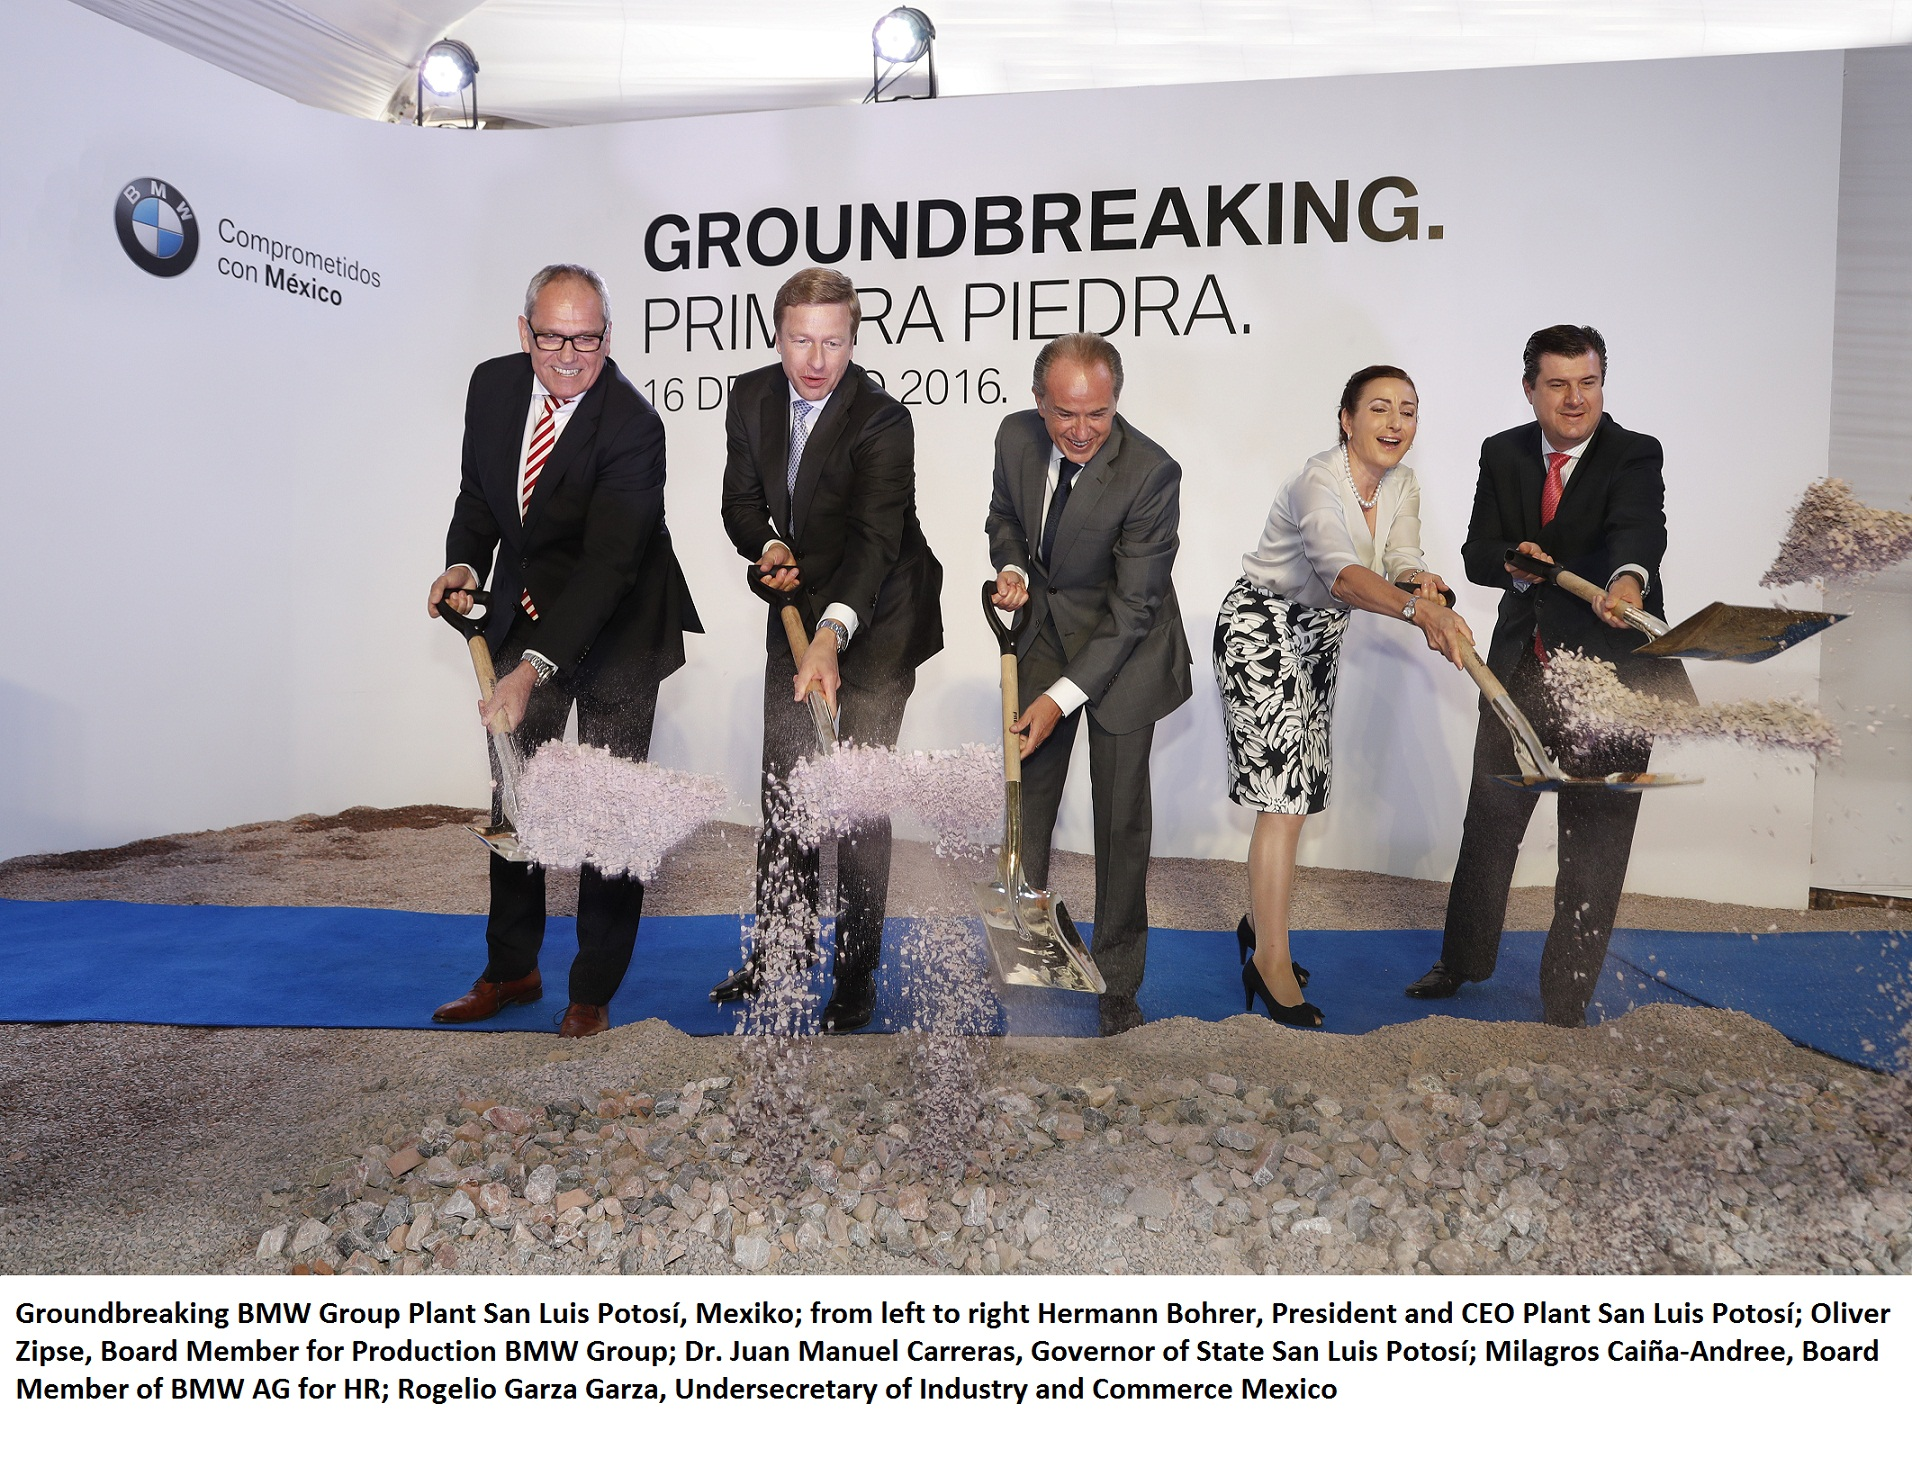 Groundbreaking BMW Group Plant Mexico